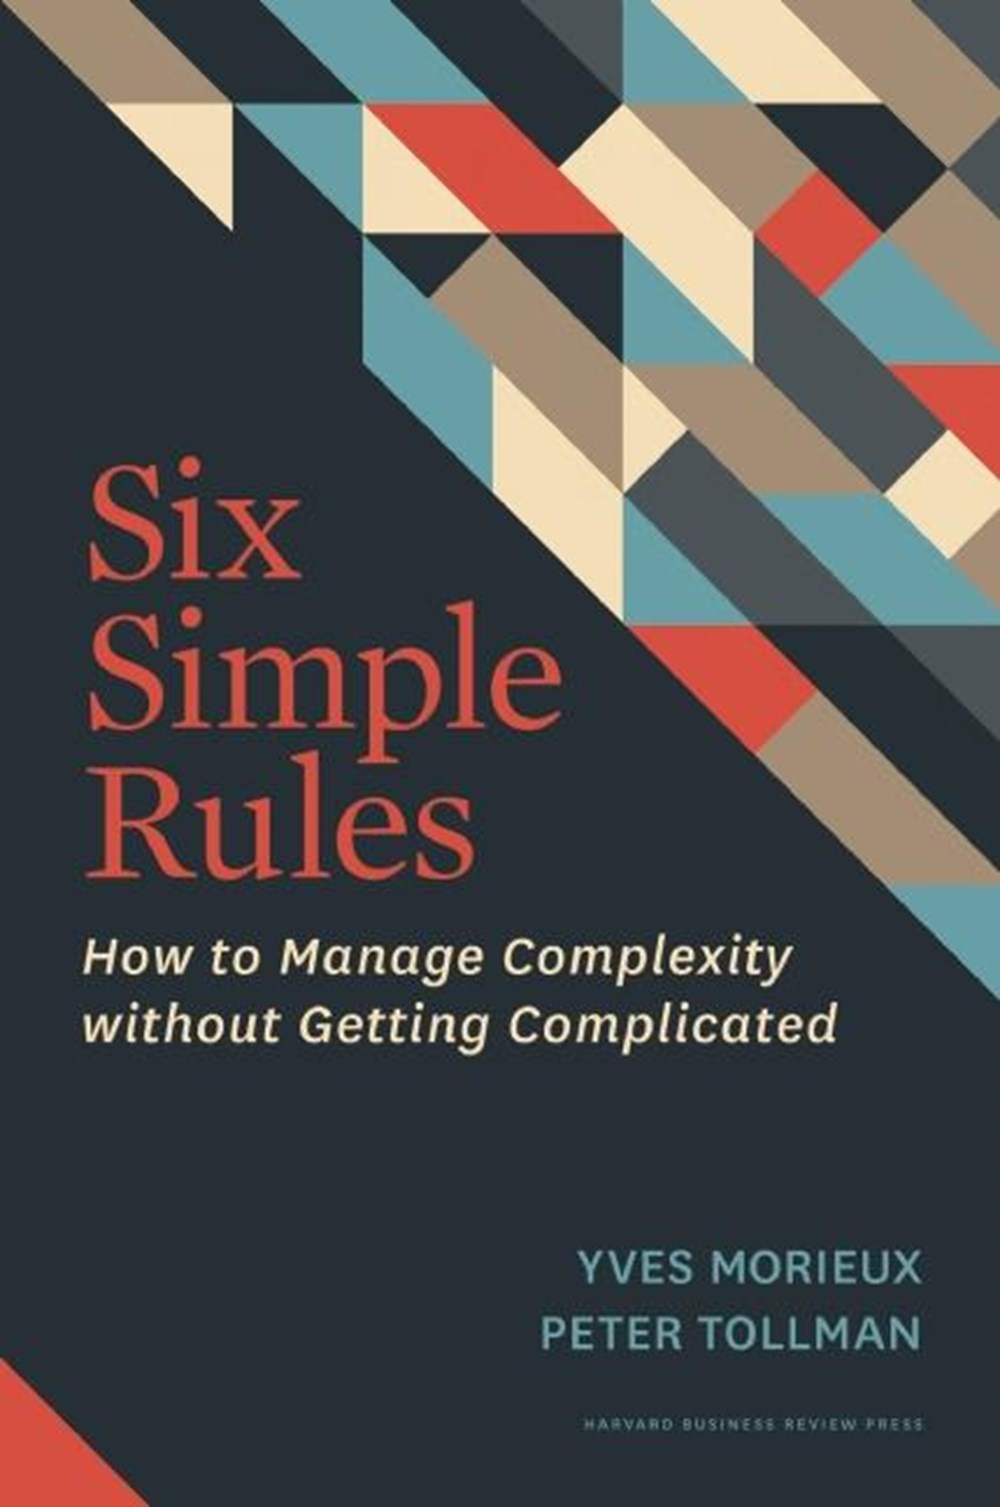 Six Simple Rules How to Manage Complexity Without Getting Complicated